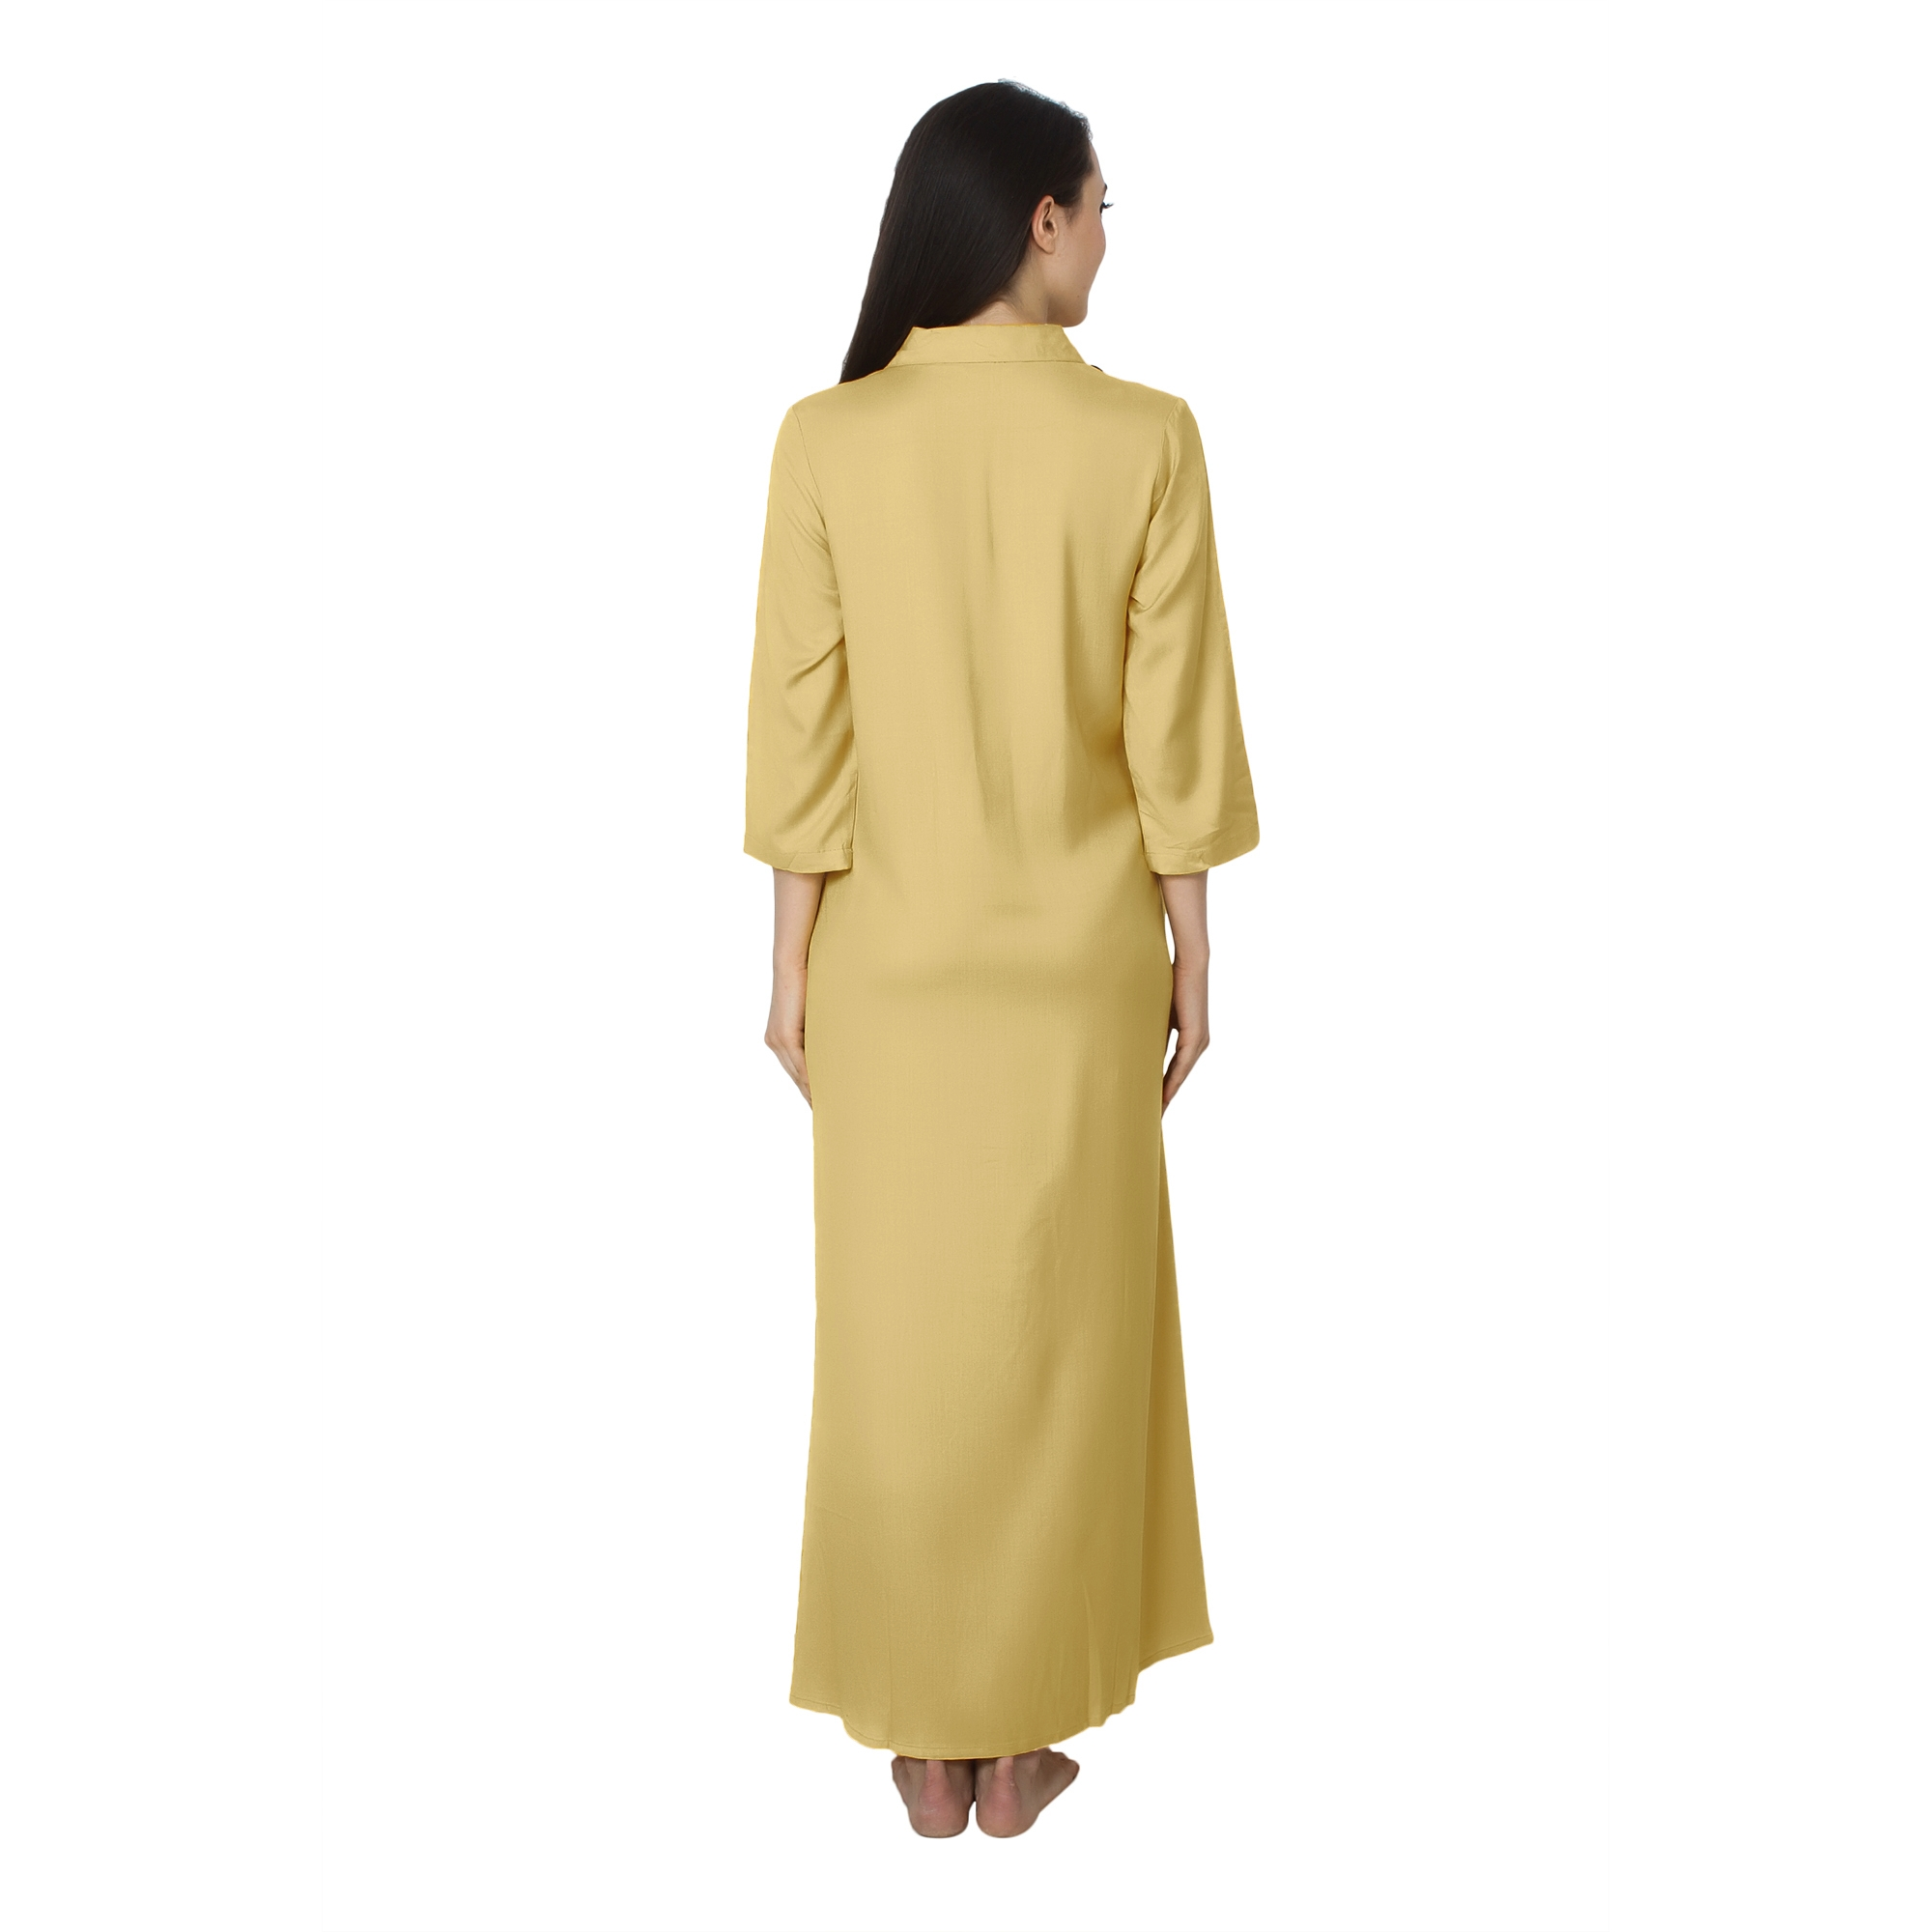 Shift Style ShirtDress in Gold